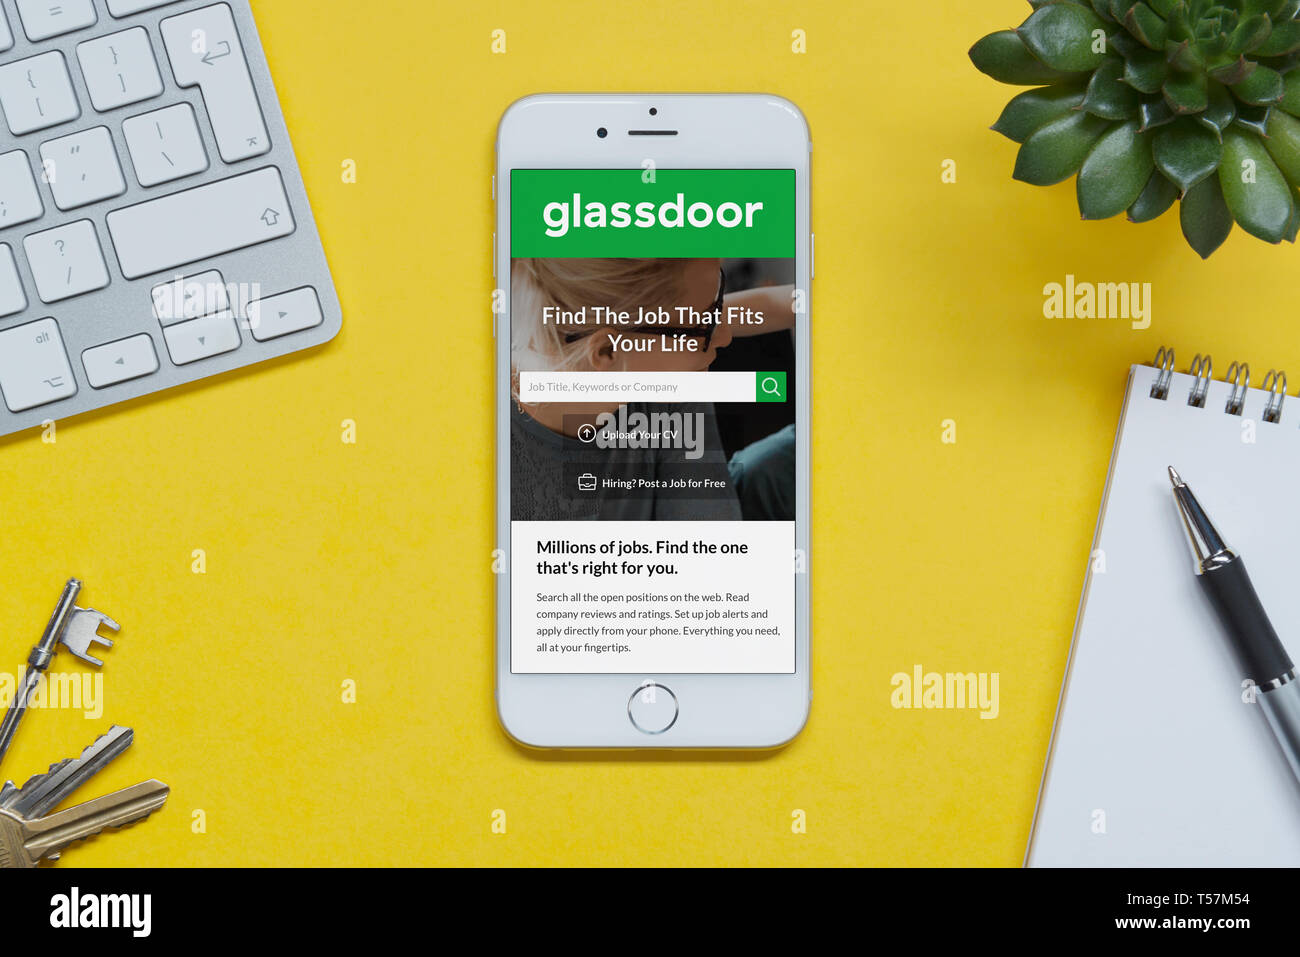 An iPhone showing the Glassdoor website rests on a yellow background table with a keyboard, keys, notepad and plant (Editorial use only). - Stock Image